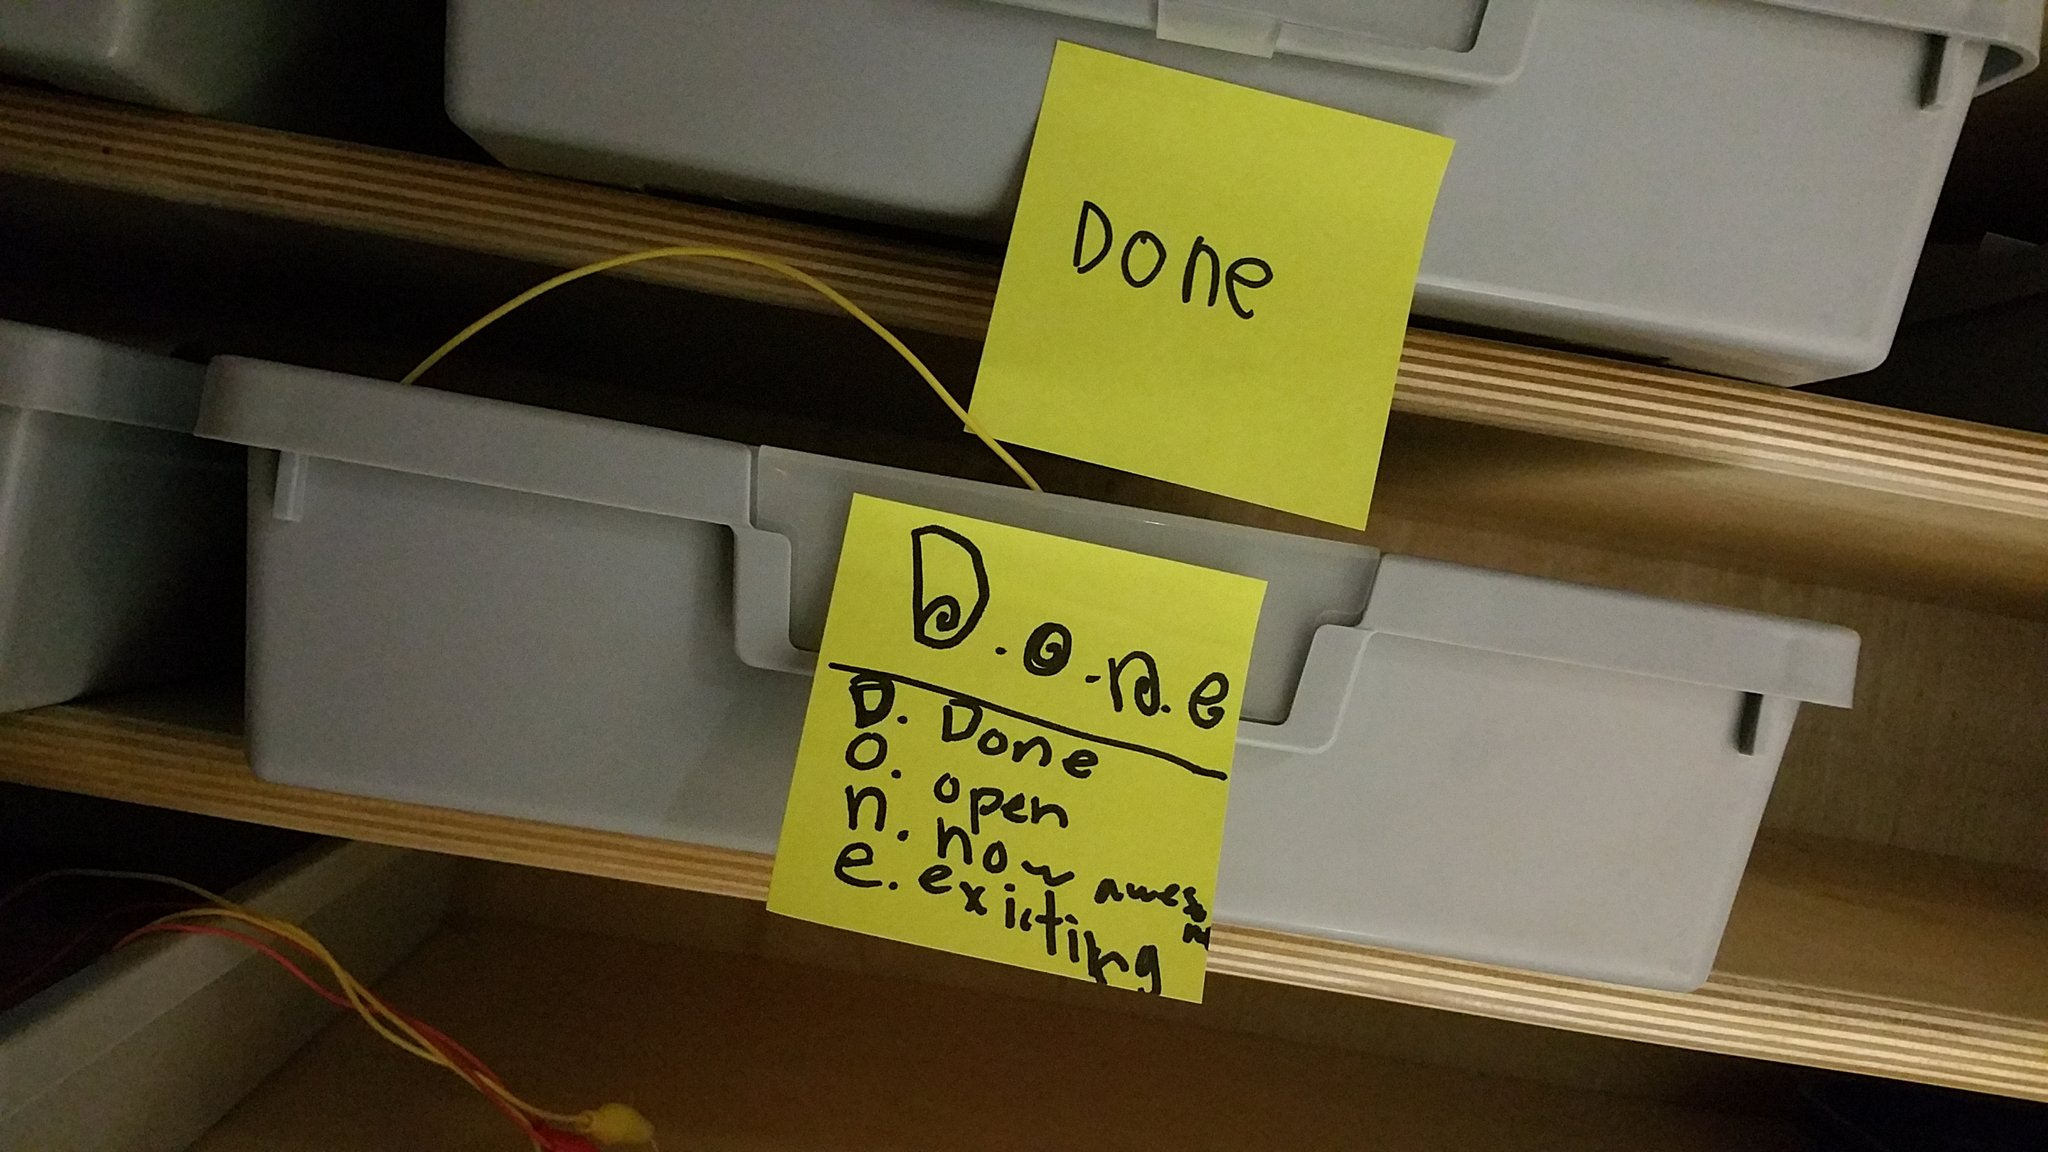 """It's not unusual for us to ask a stdnt abt their #MakerEd project,""""How would you define 'done'?"""" Here's how this 1 does #kidquote #MVPSchool https://t.co/bZyf6vPDvy"""